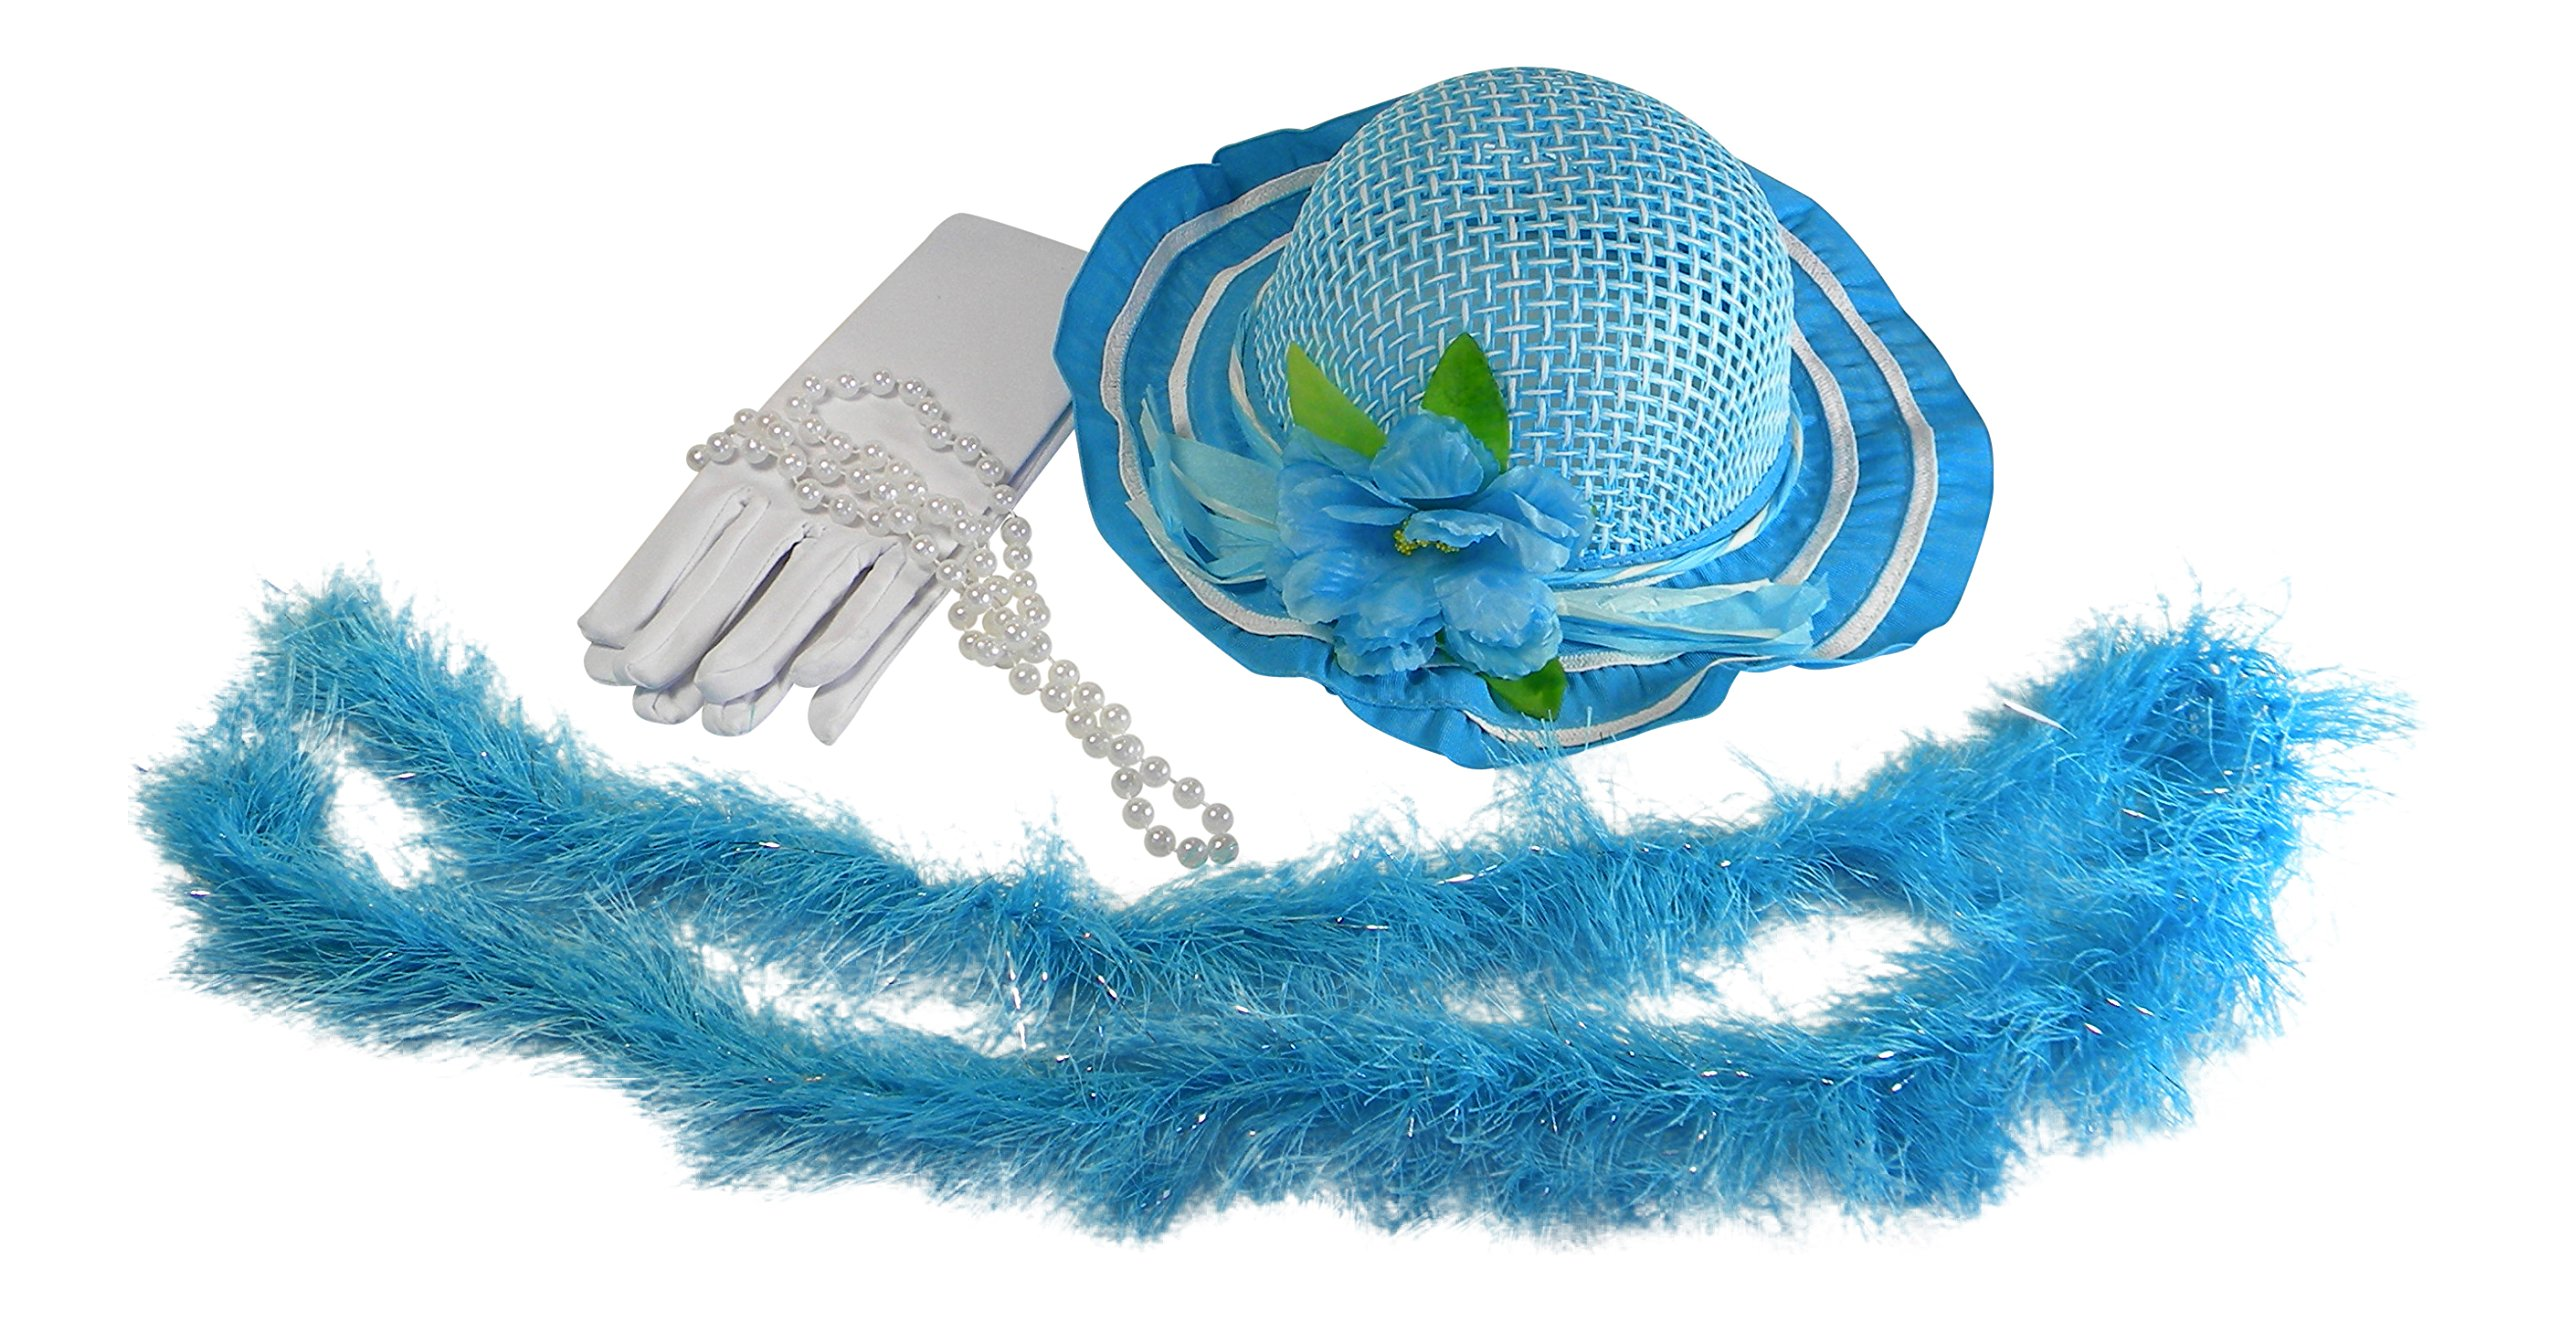 Butterfly Twinkles Girls Tea Party Dress Up Play Set with Blue Sun Hat, Boa, Plastic Pearl Necklace, and White Gloves